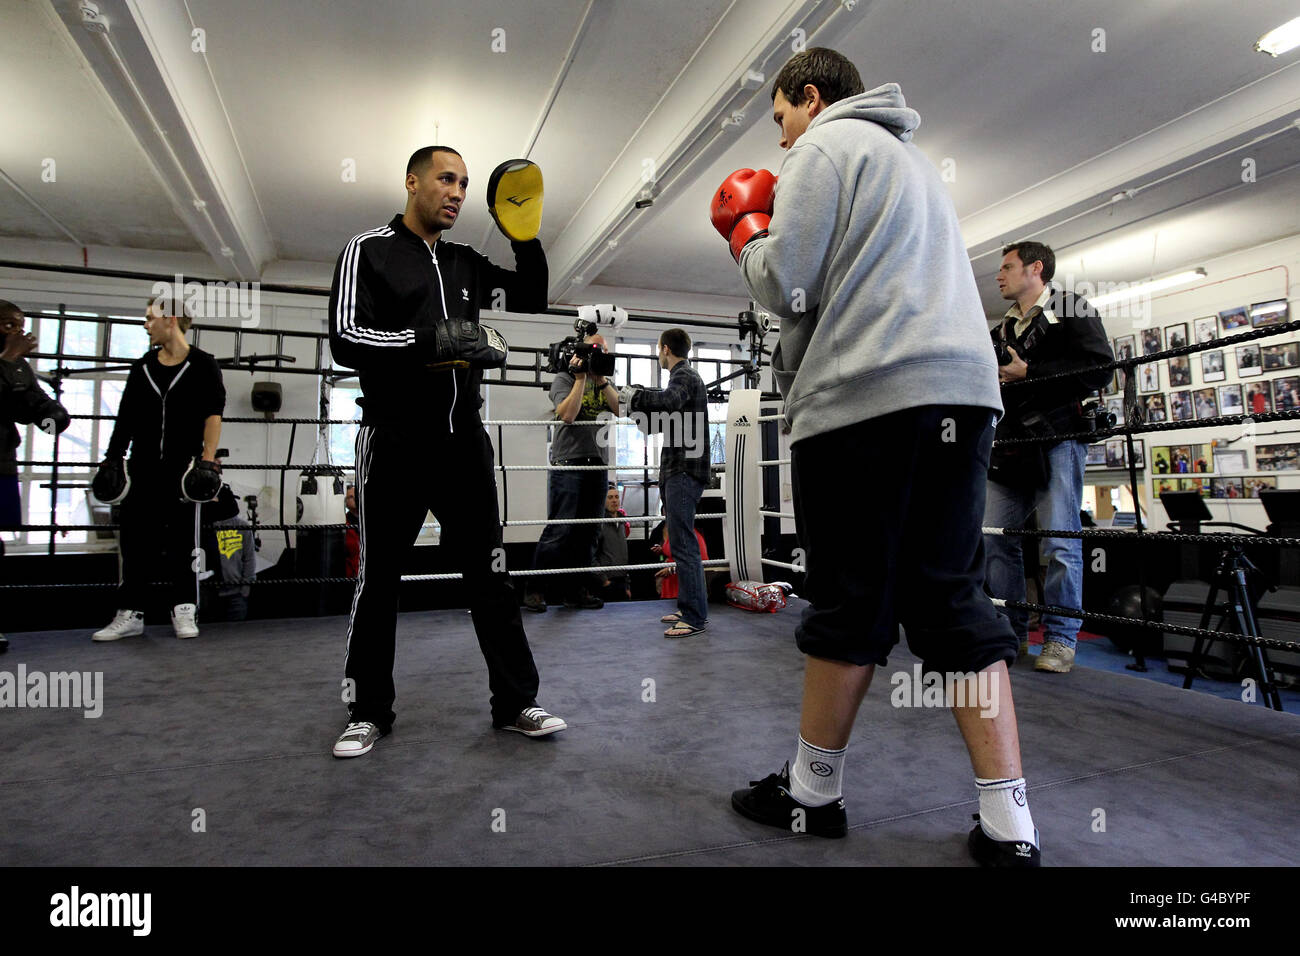 Times amature boxing club